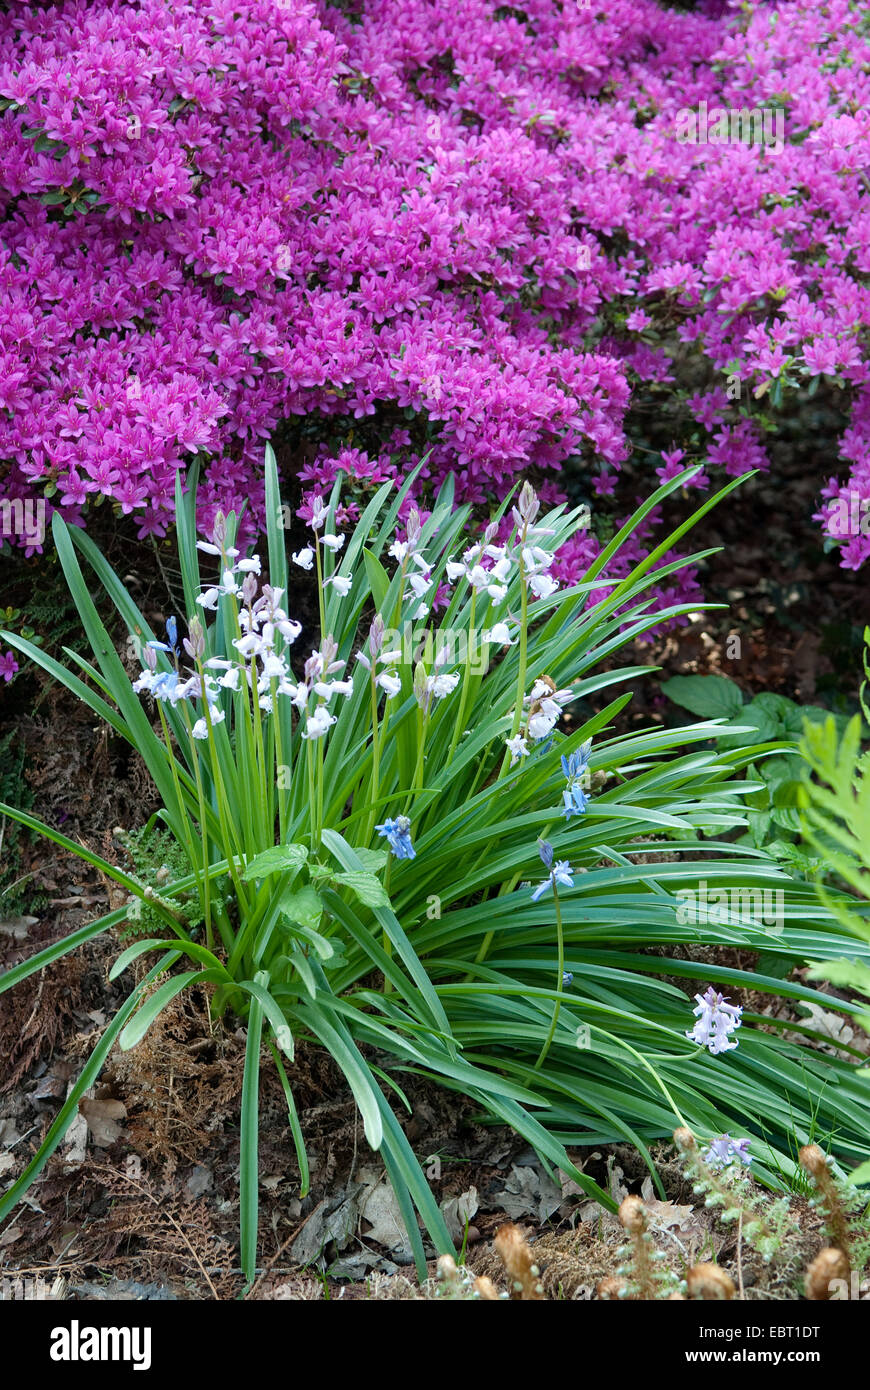 Spanish Bluebell (Hyacinthoides hispanica), blooming in front of Rhododendron obtusum - Stock Image